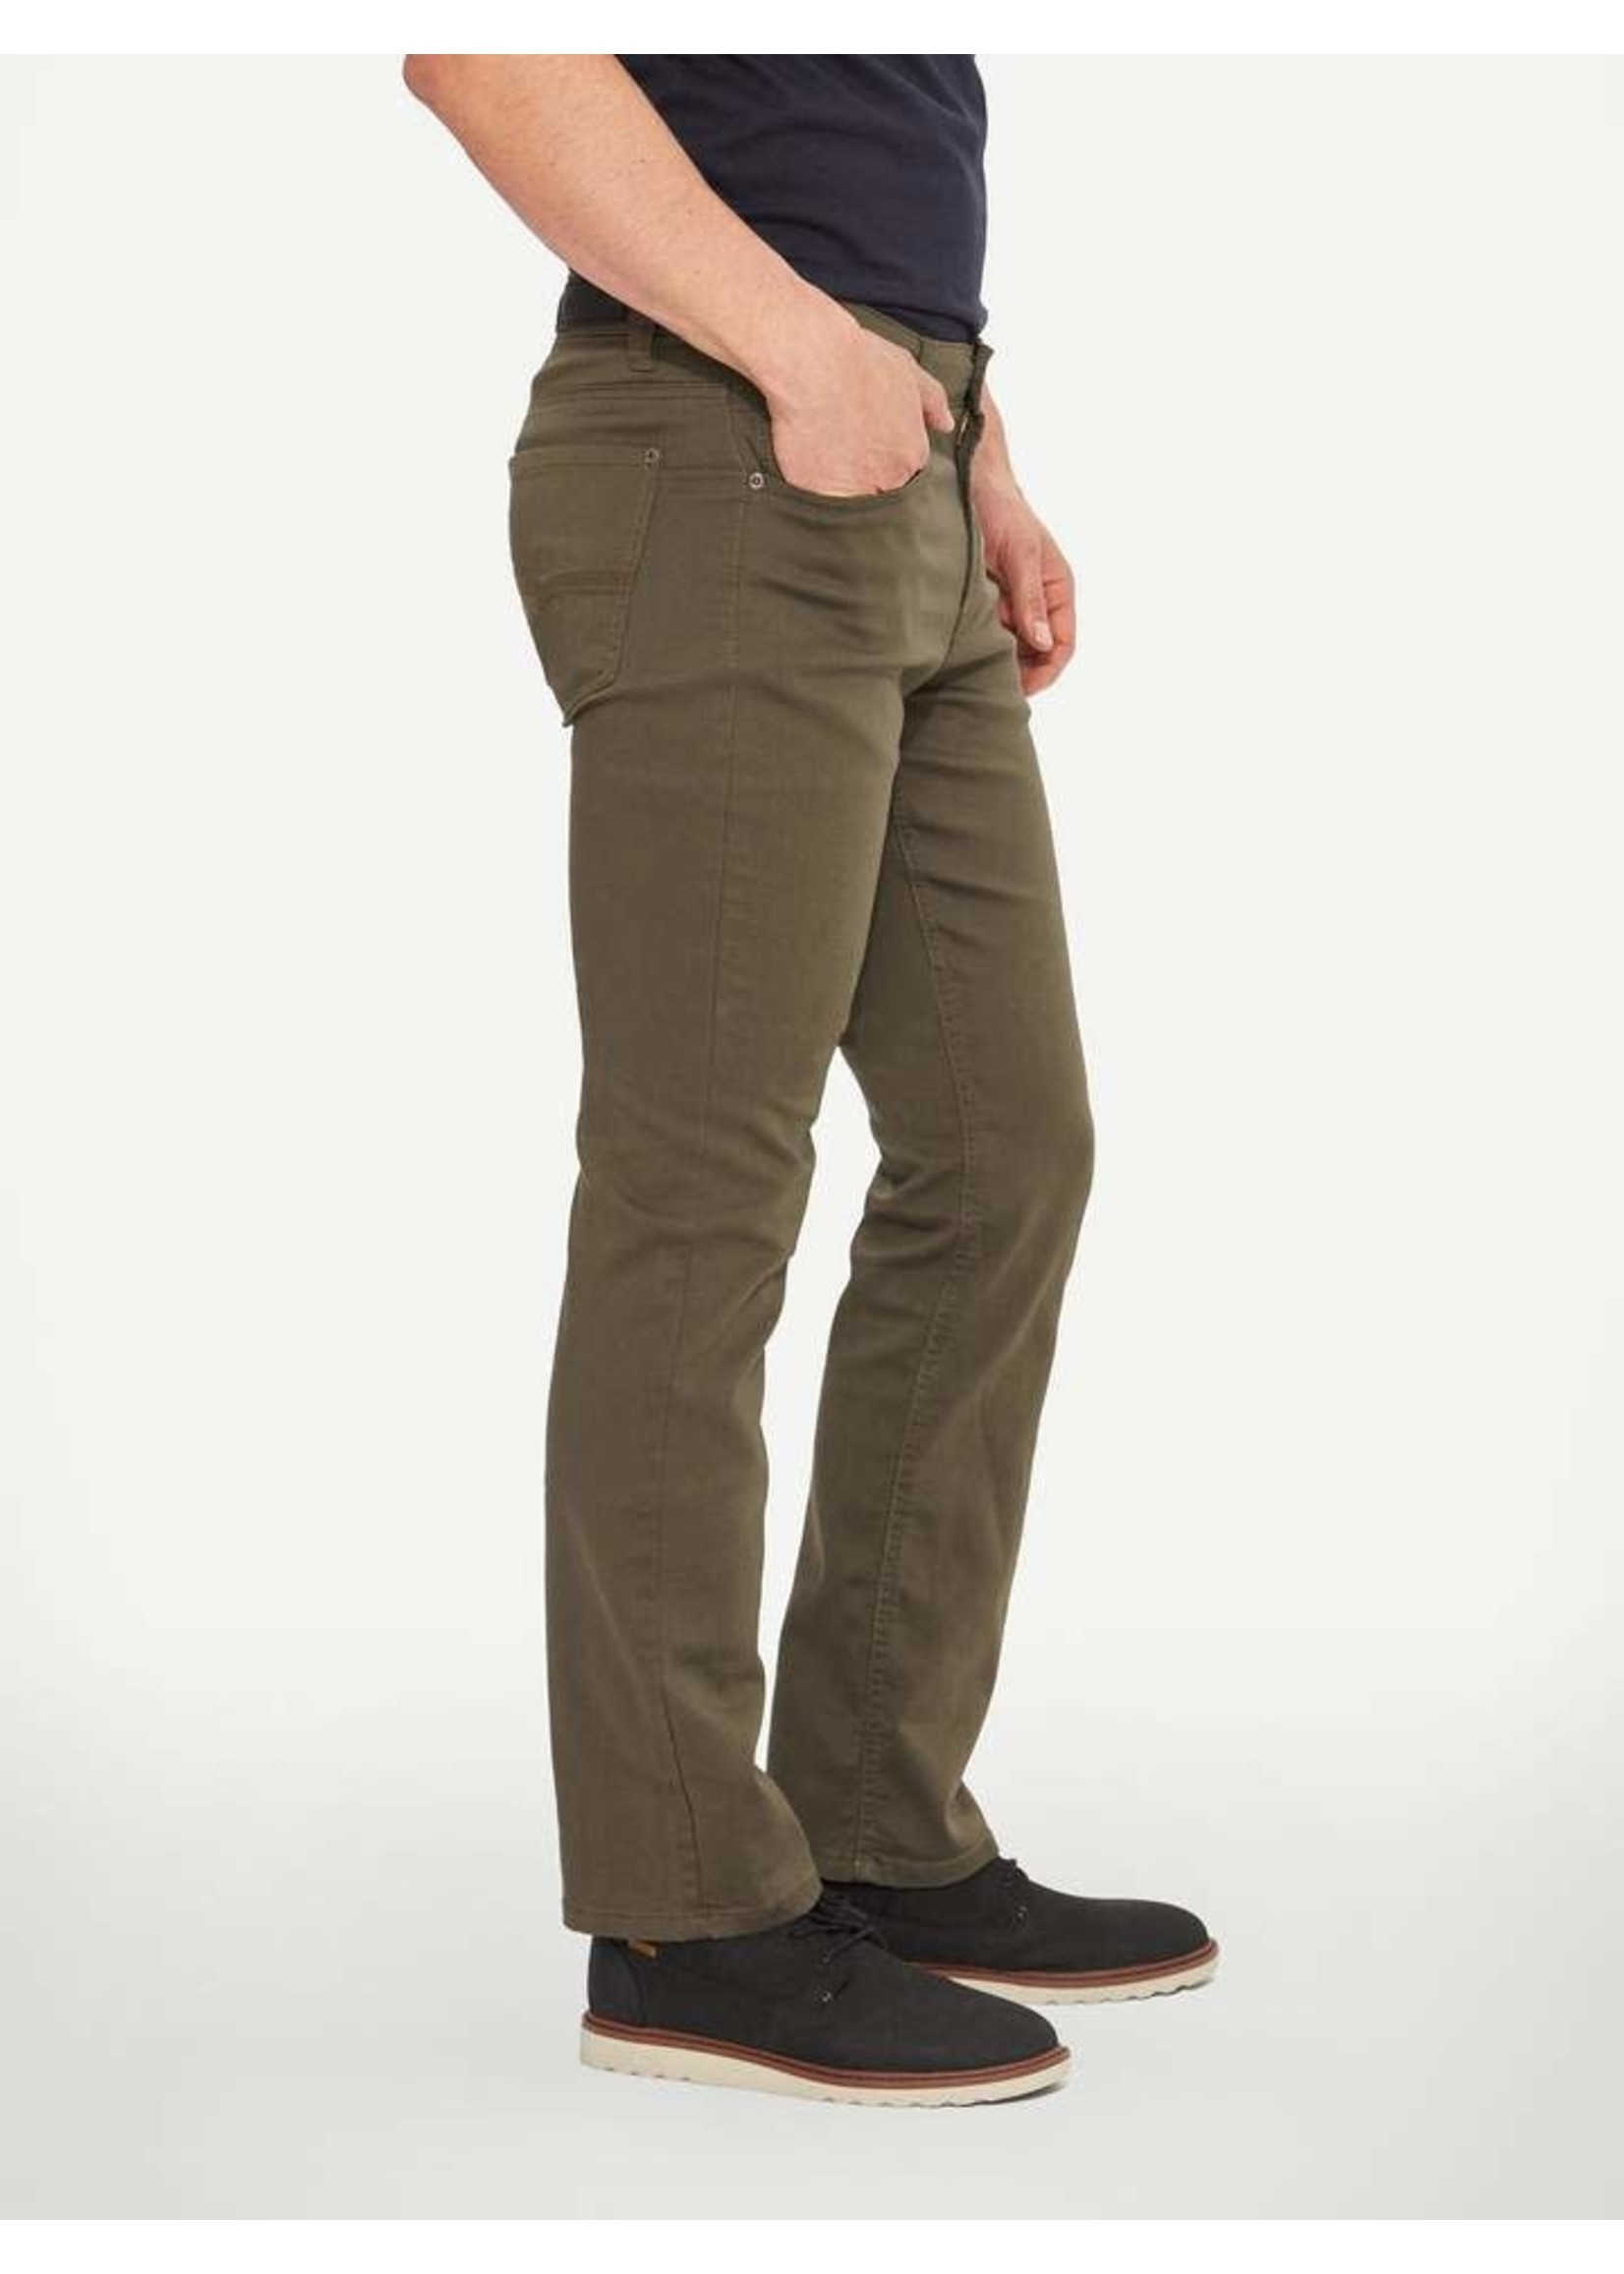 """Lois Jeans Canada The """"Brad Slim 6240-54"""" by Lois Jeans"""